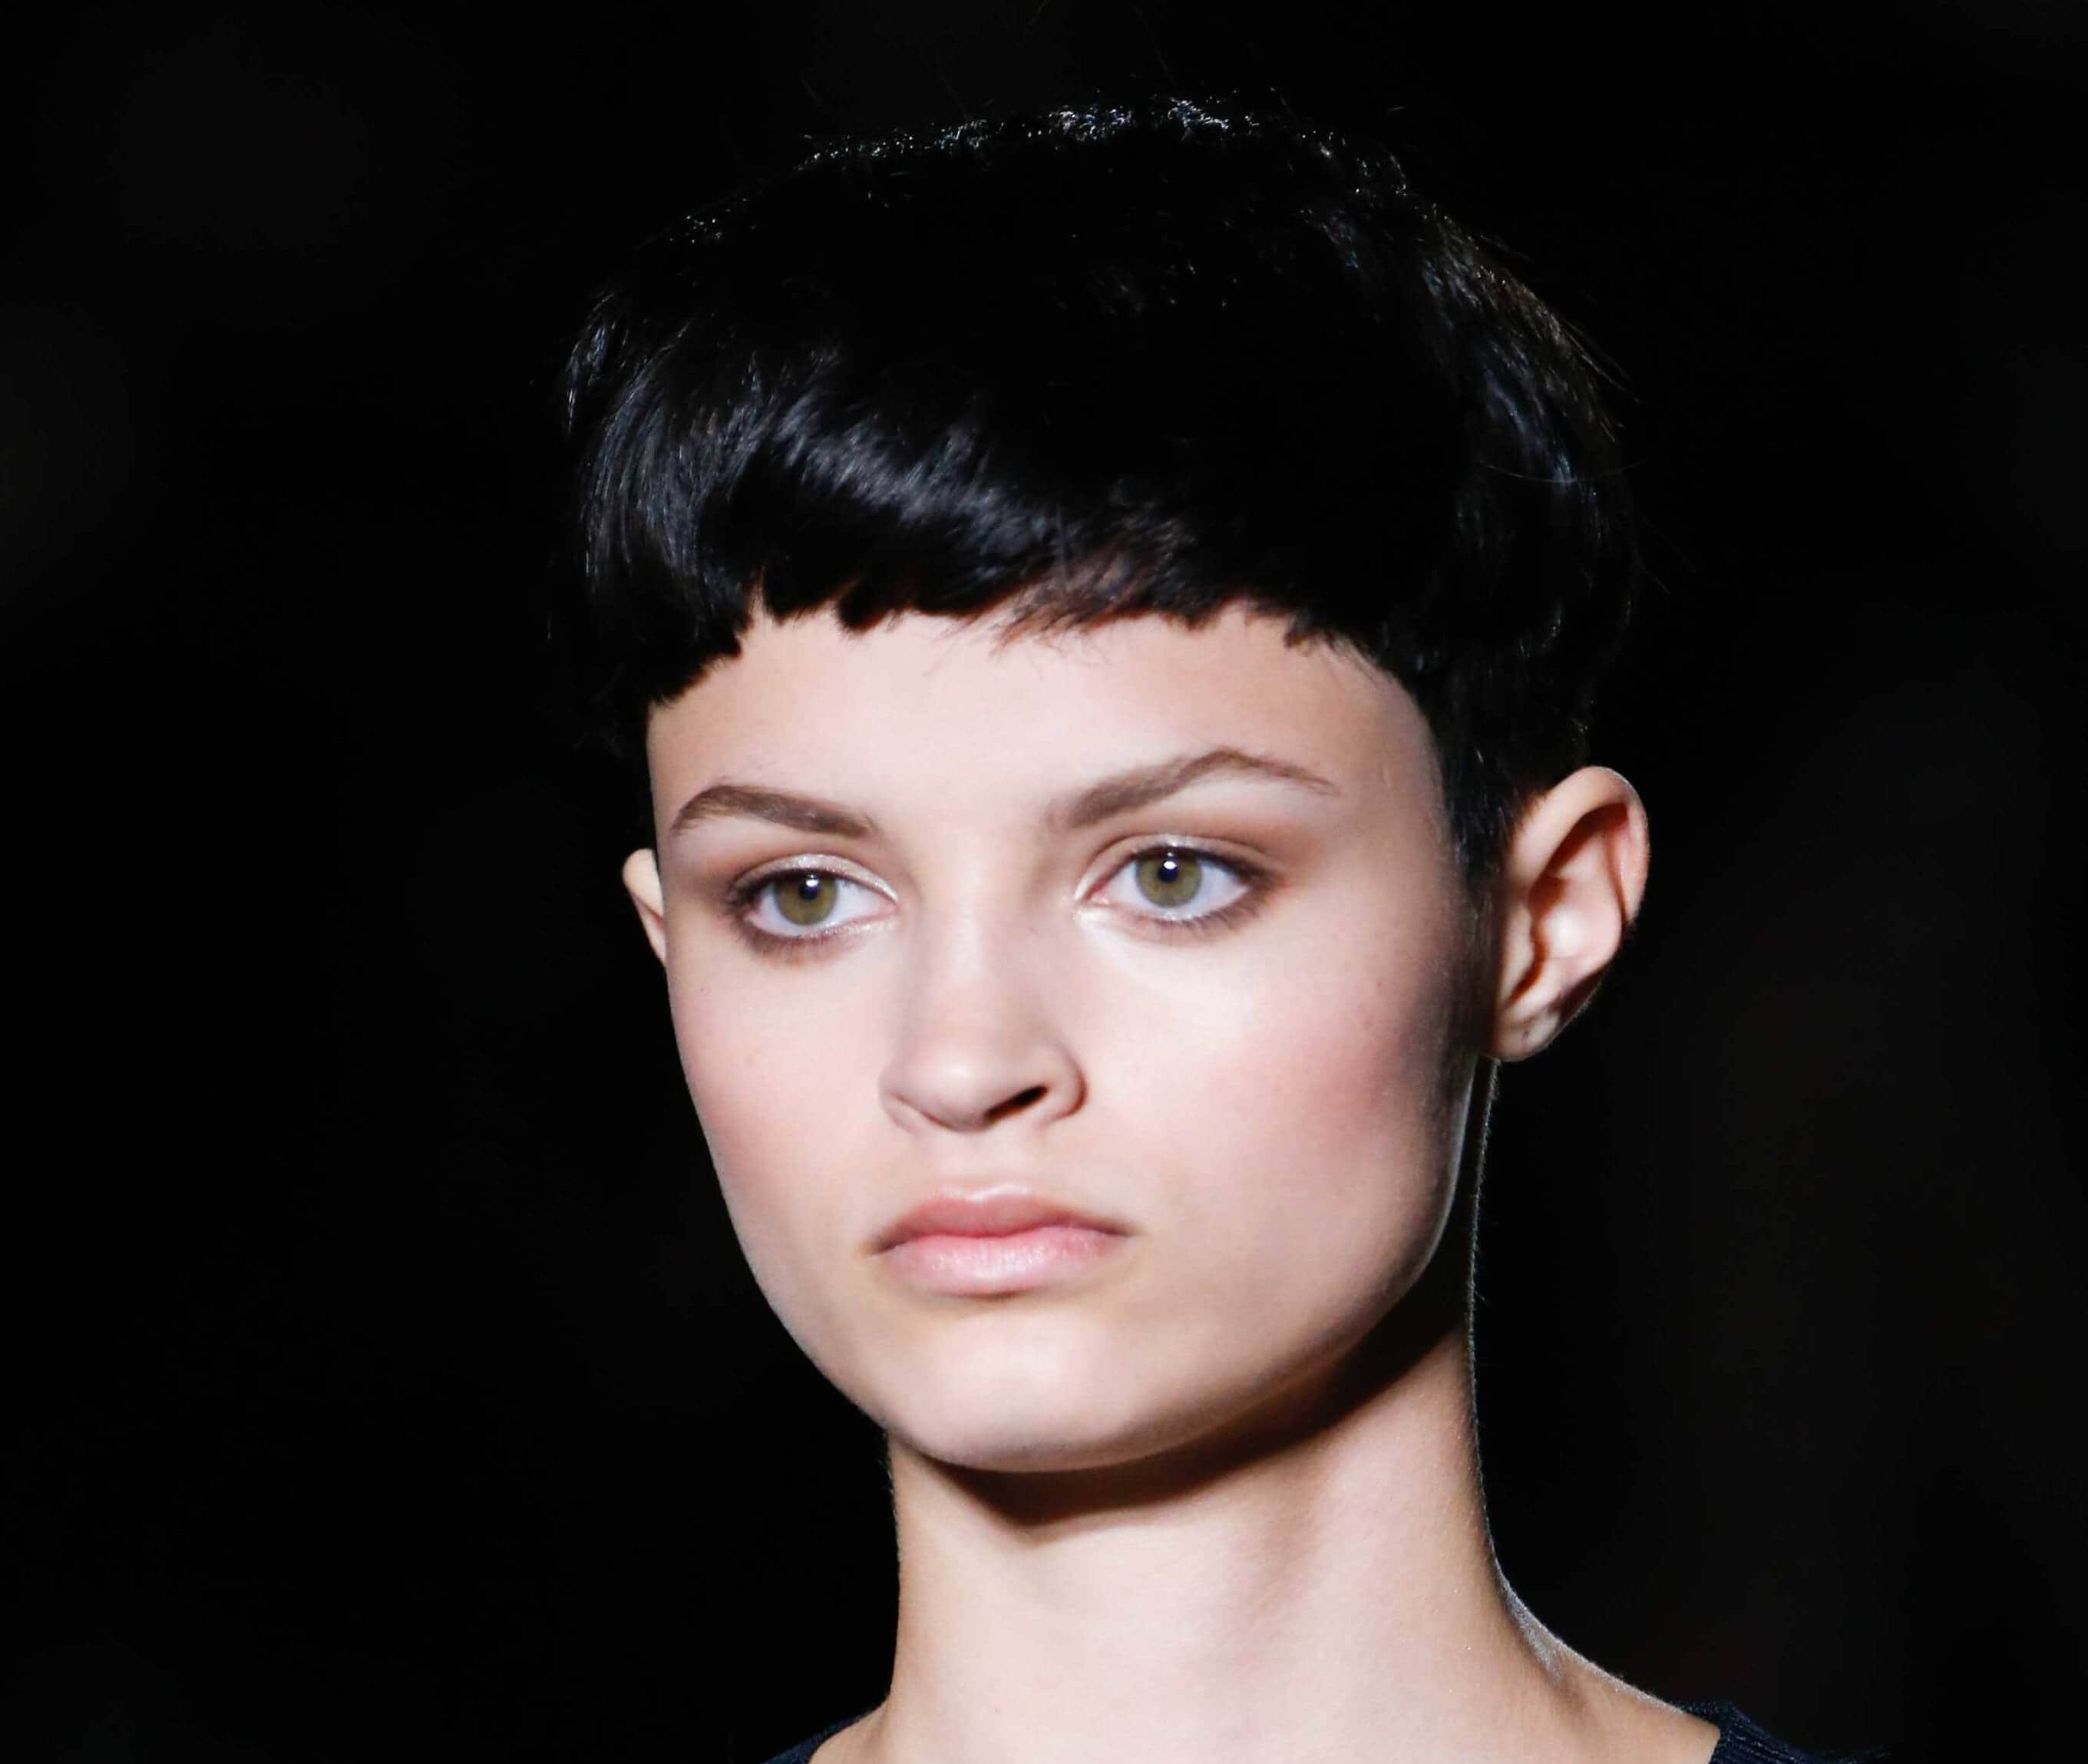 Hairstyles for round faces: Brunette woman with short black bowl cut pixie